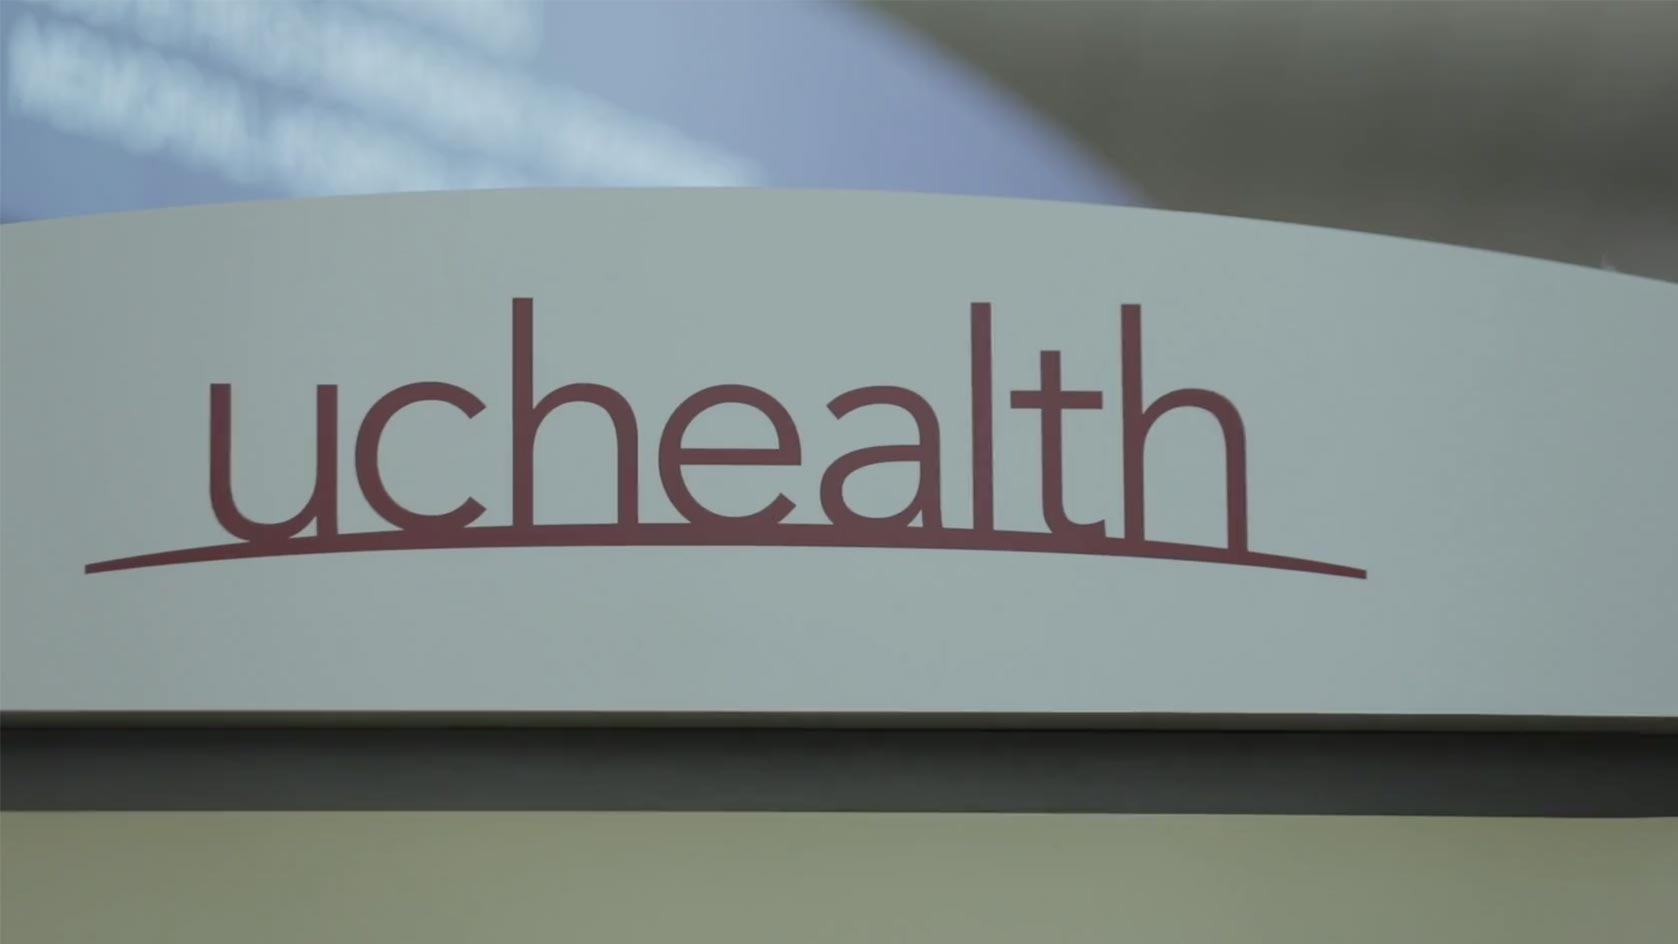 Learn How UCHealth Implemented Employee Voice - Waggl